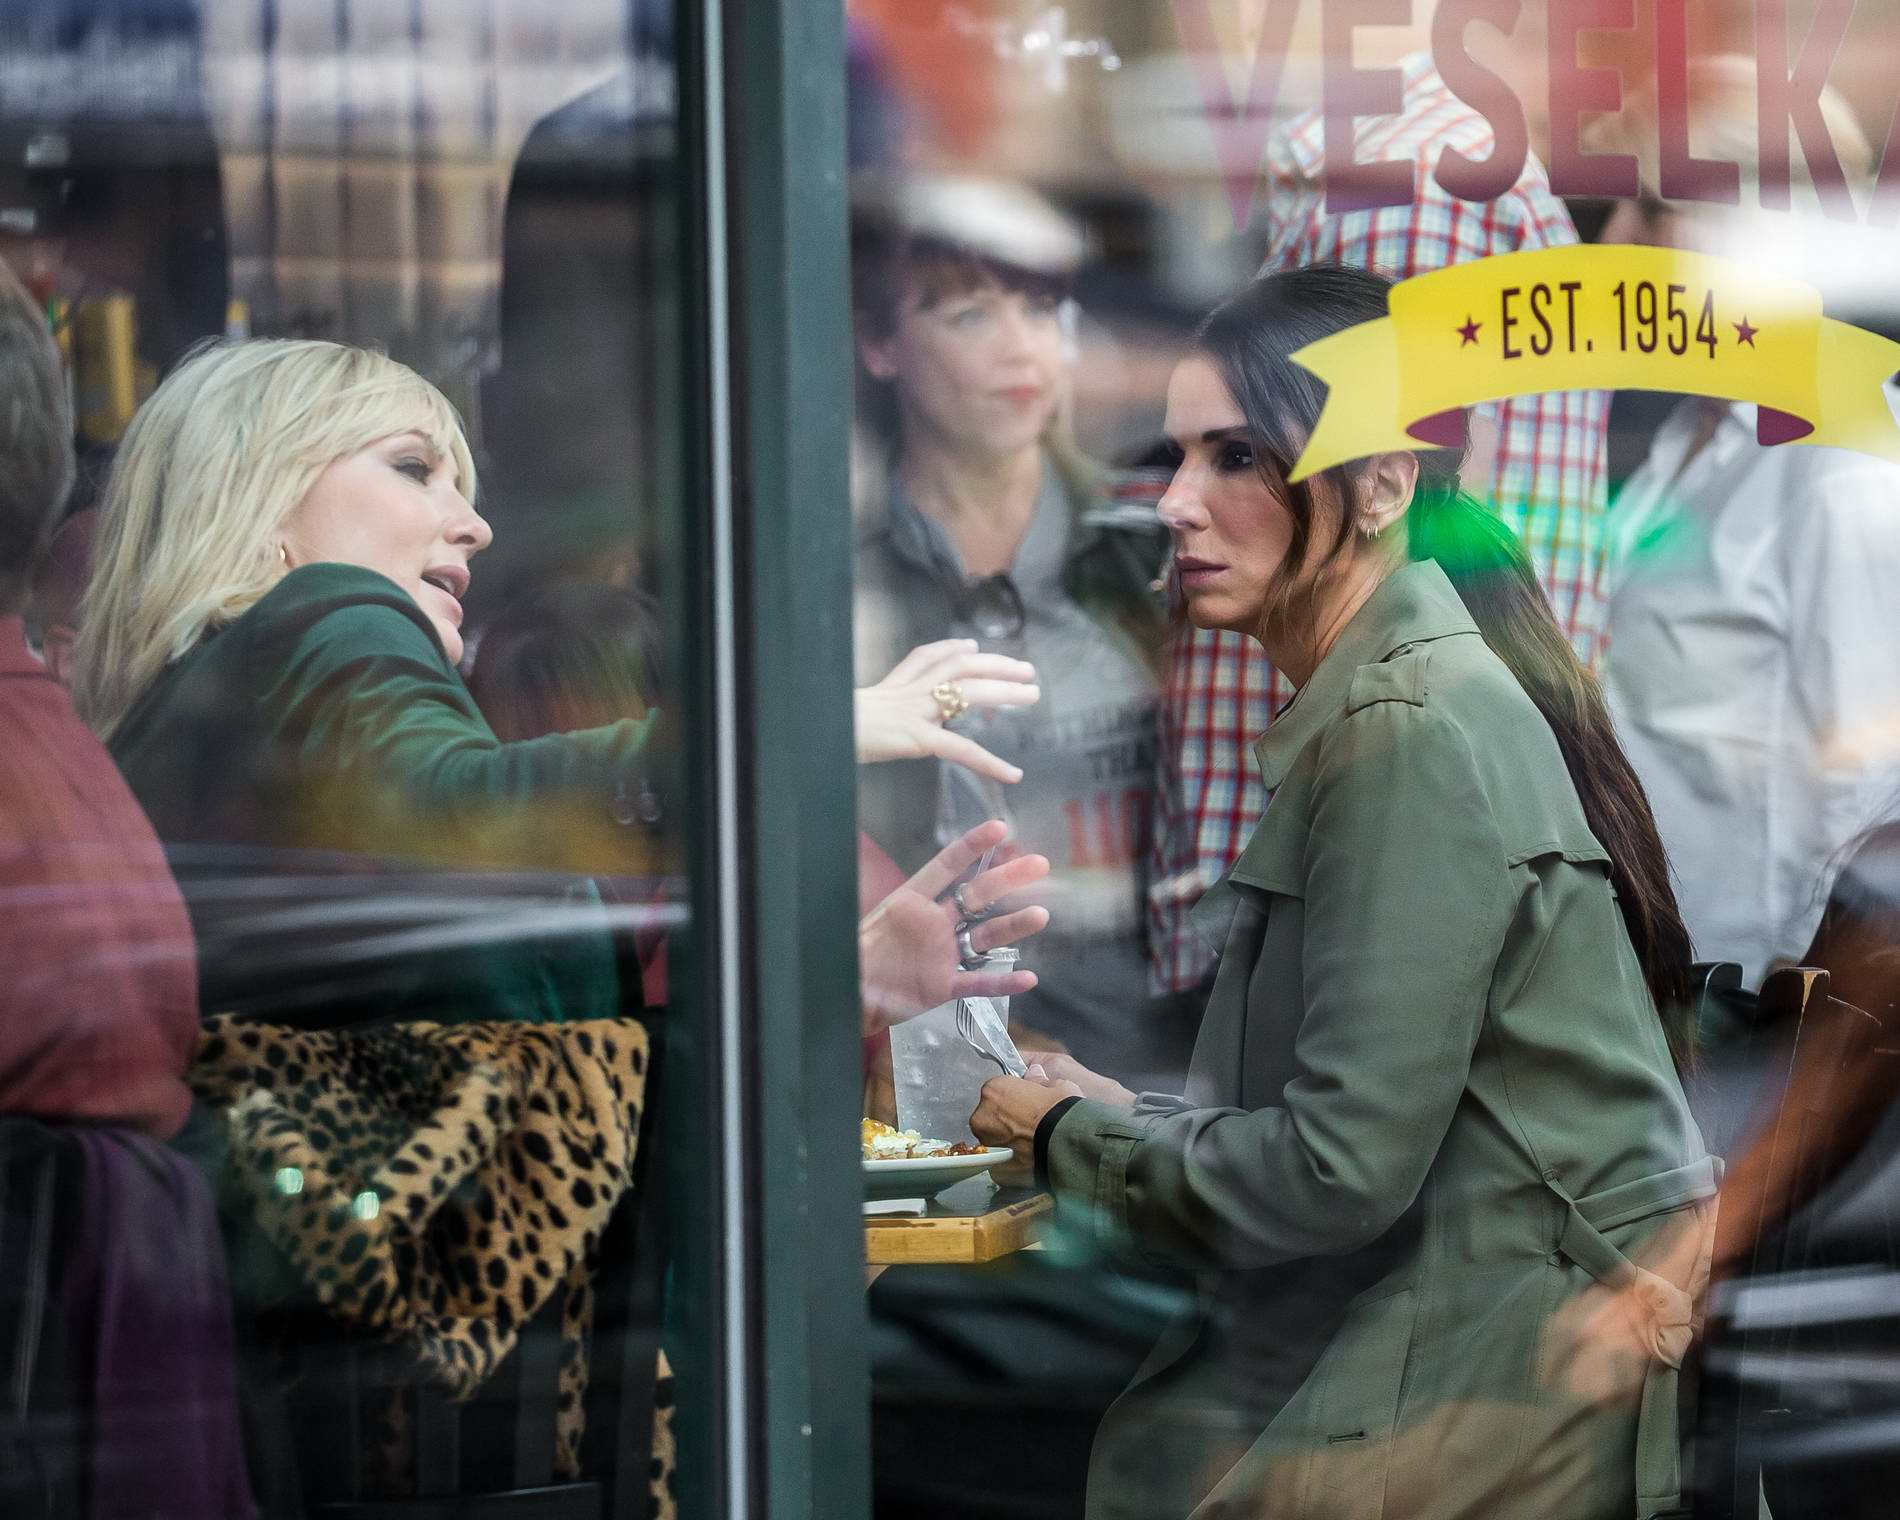 """Sandra Bullock and Cate Blanchett on location at Cafe Veselka in East Village filming """"Ocean's Eight"""" in New York"""